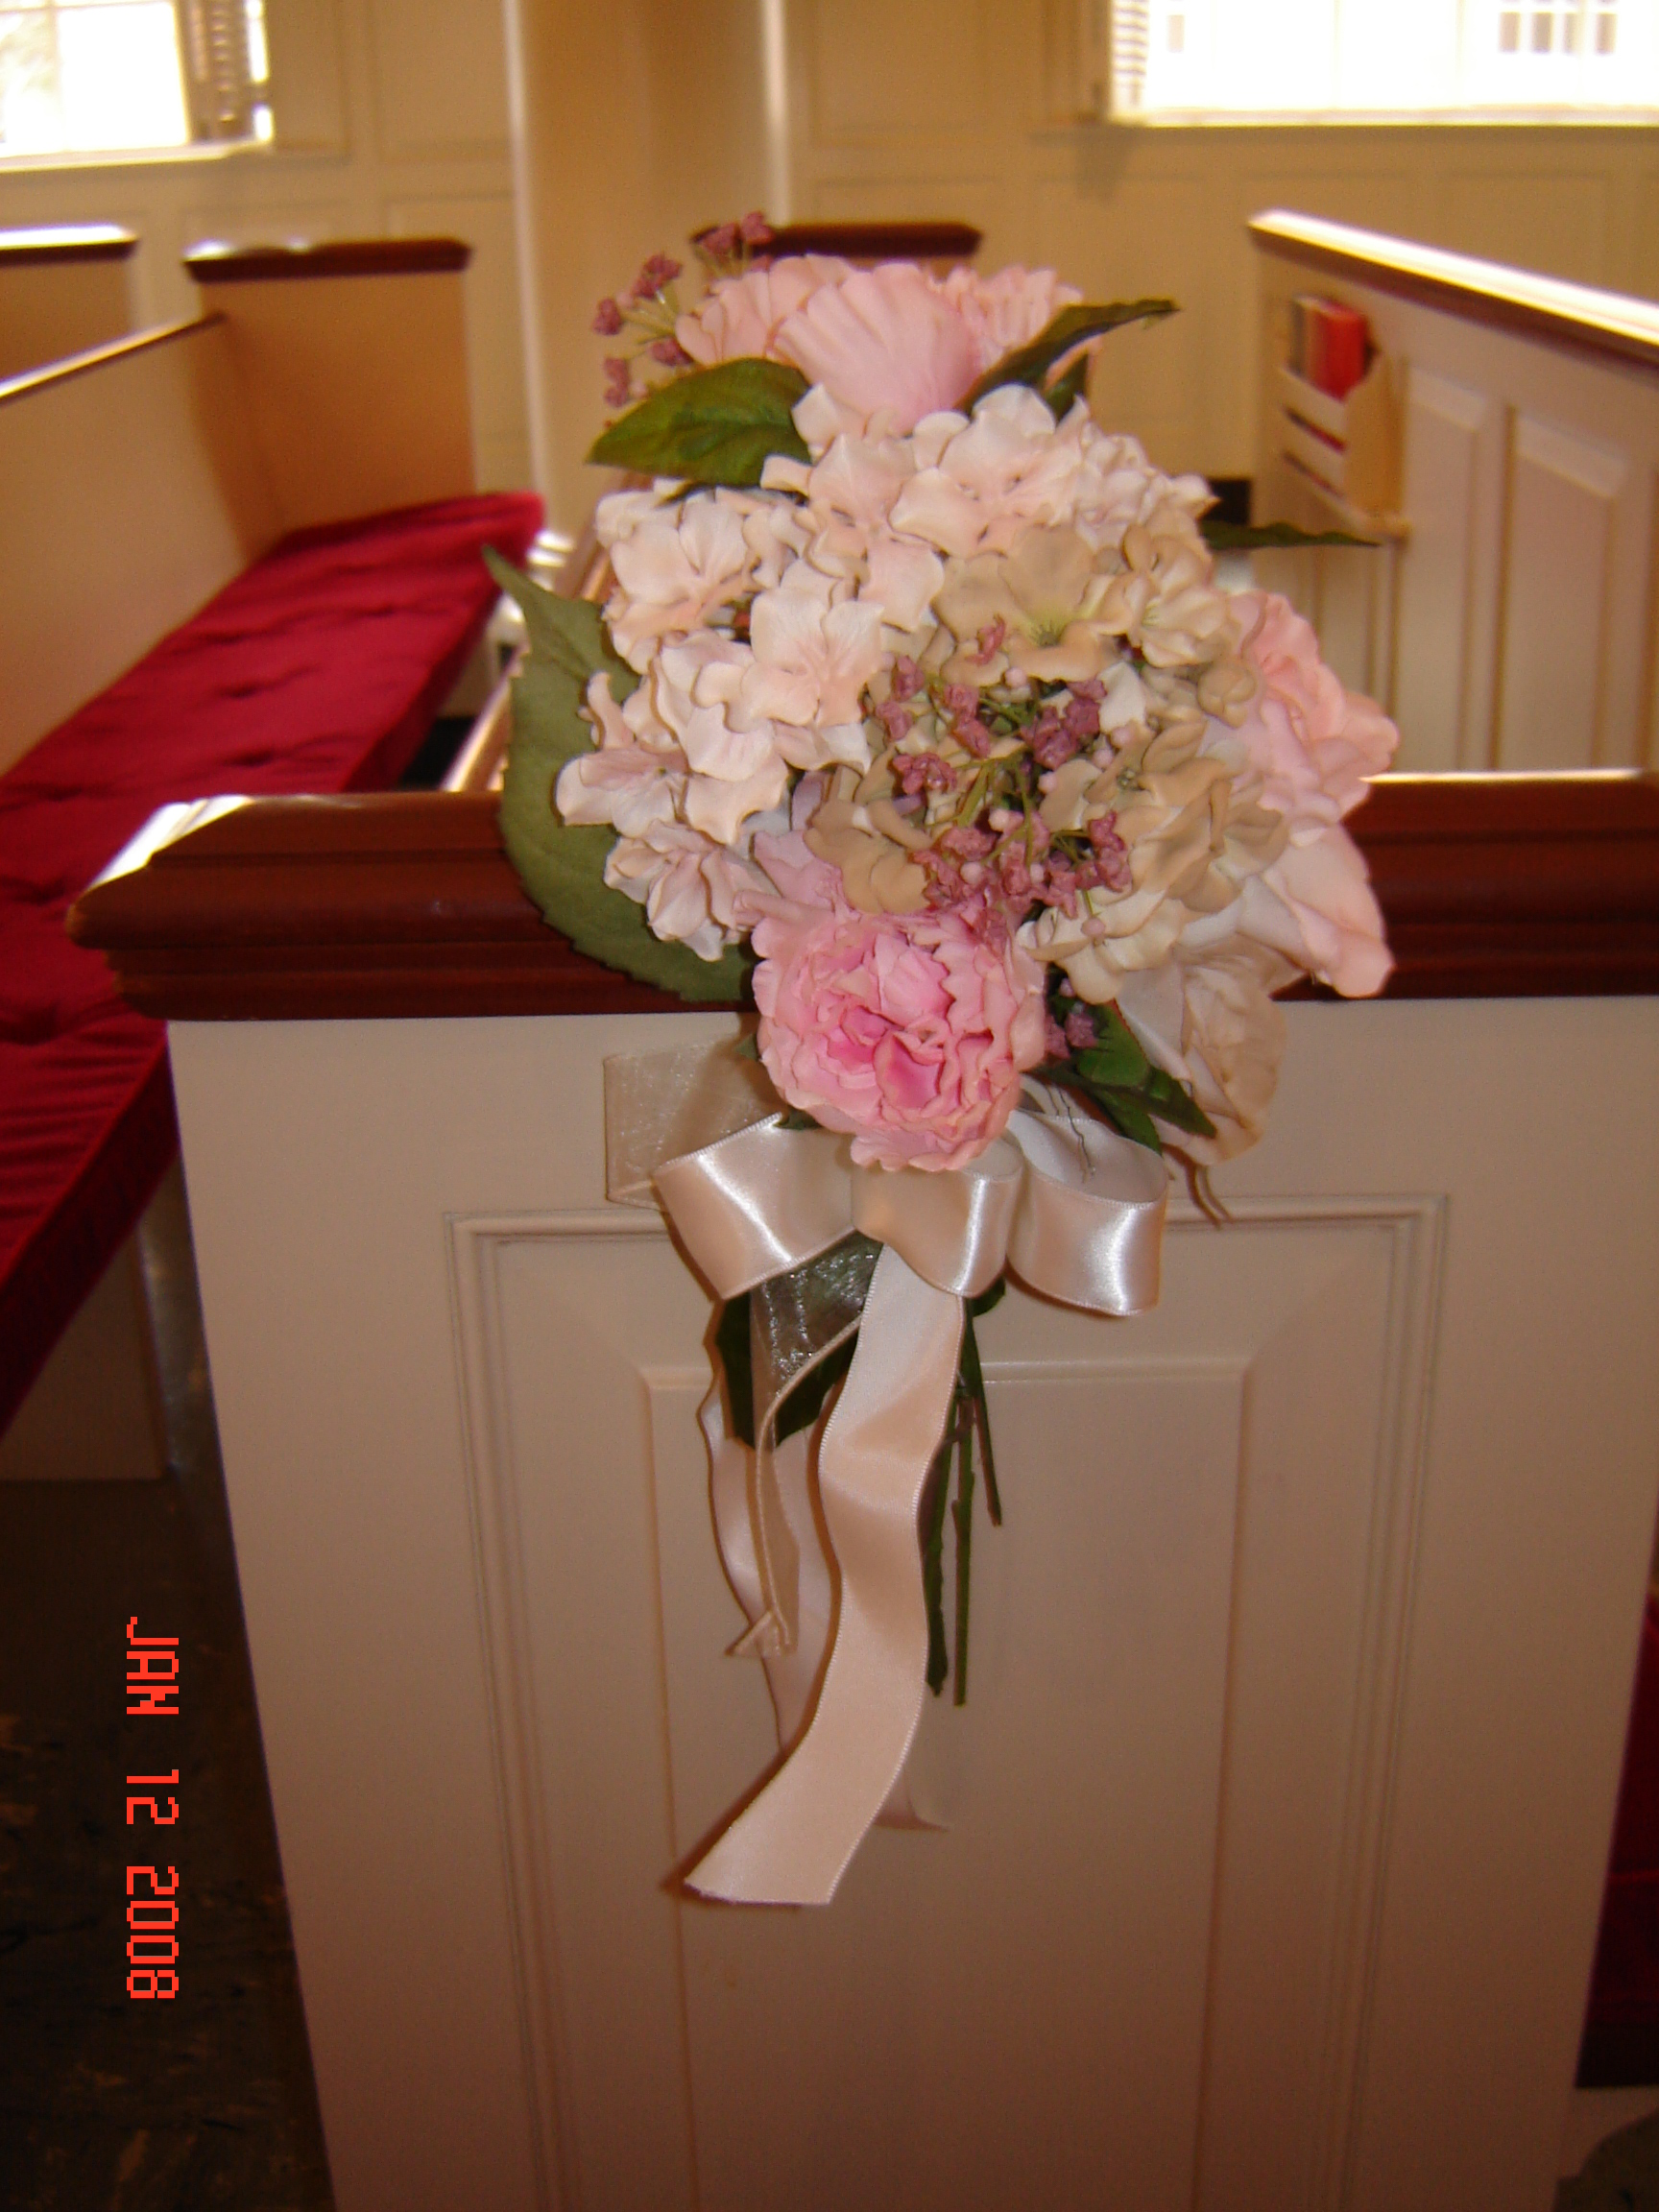 Simply elegant weddings flowers silk flowers silk bouquets aisle arrangement rentals small 1250 medium 2500 shown above large 40 above photo taken at robert karr chapel mightylinksfo